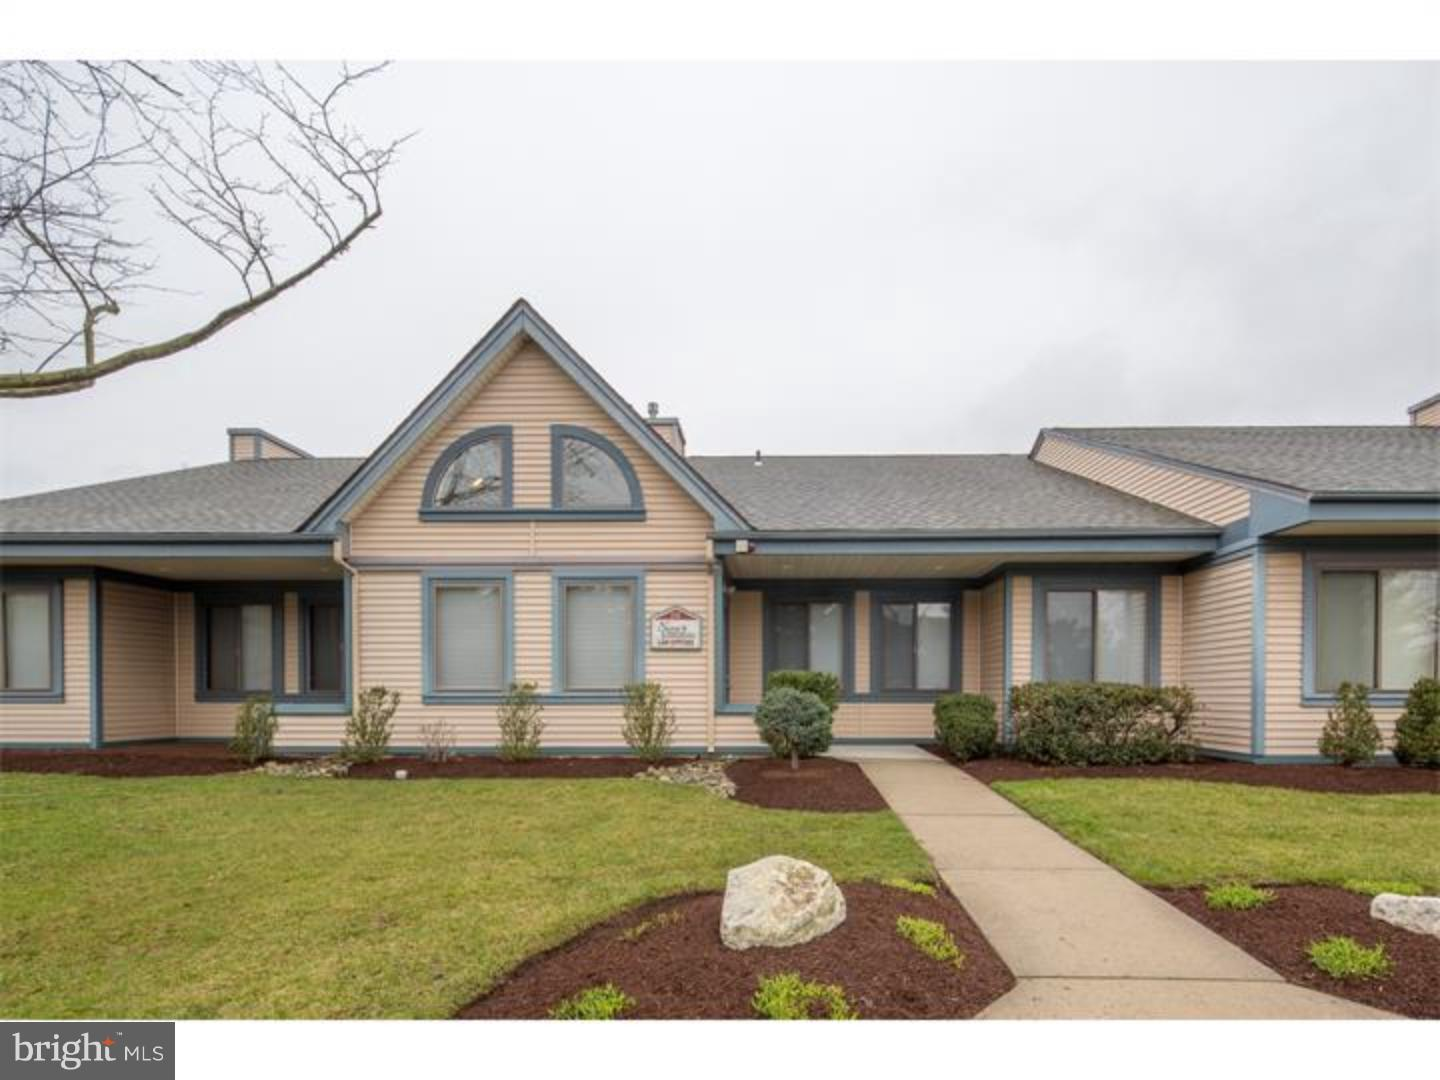 Single Family Home for Sale at 750 ROUTE 73 S #210 Evesham Twp, New Jersey 08053 United States